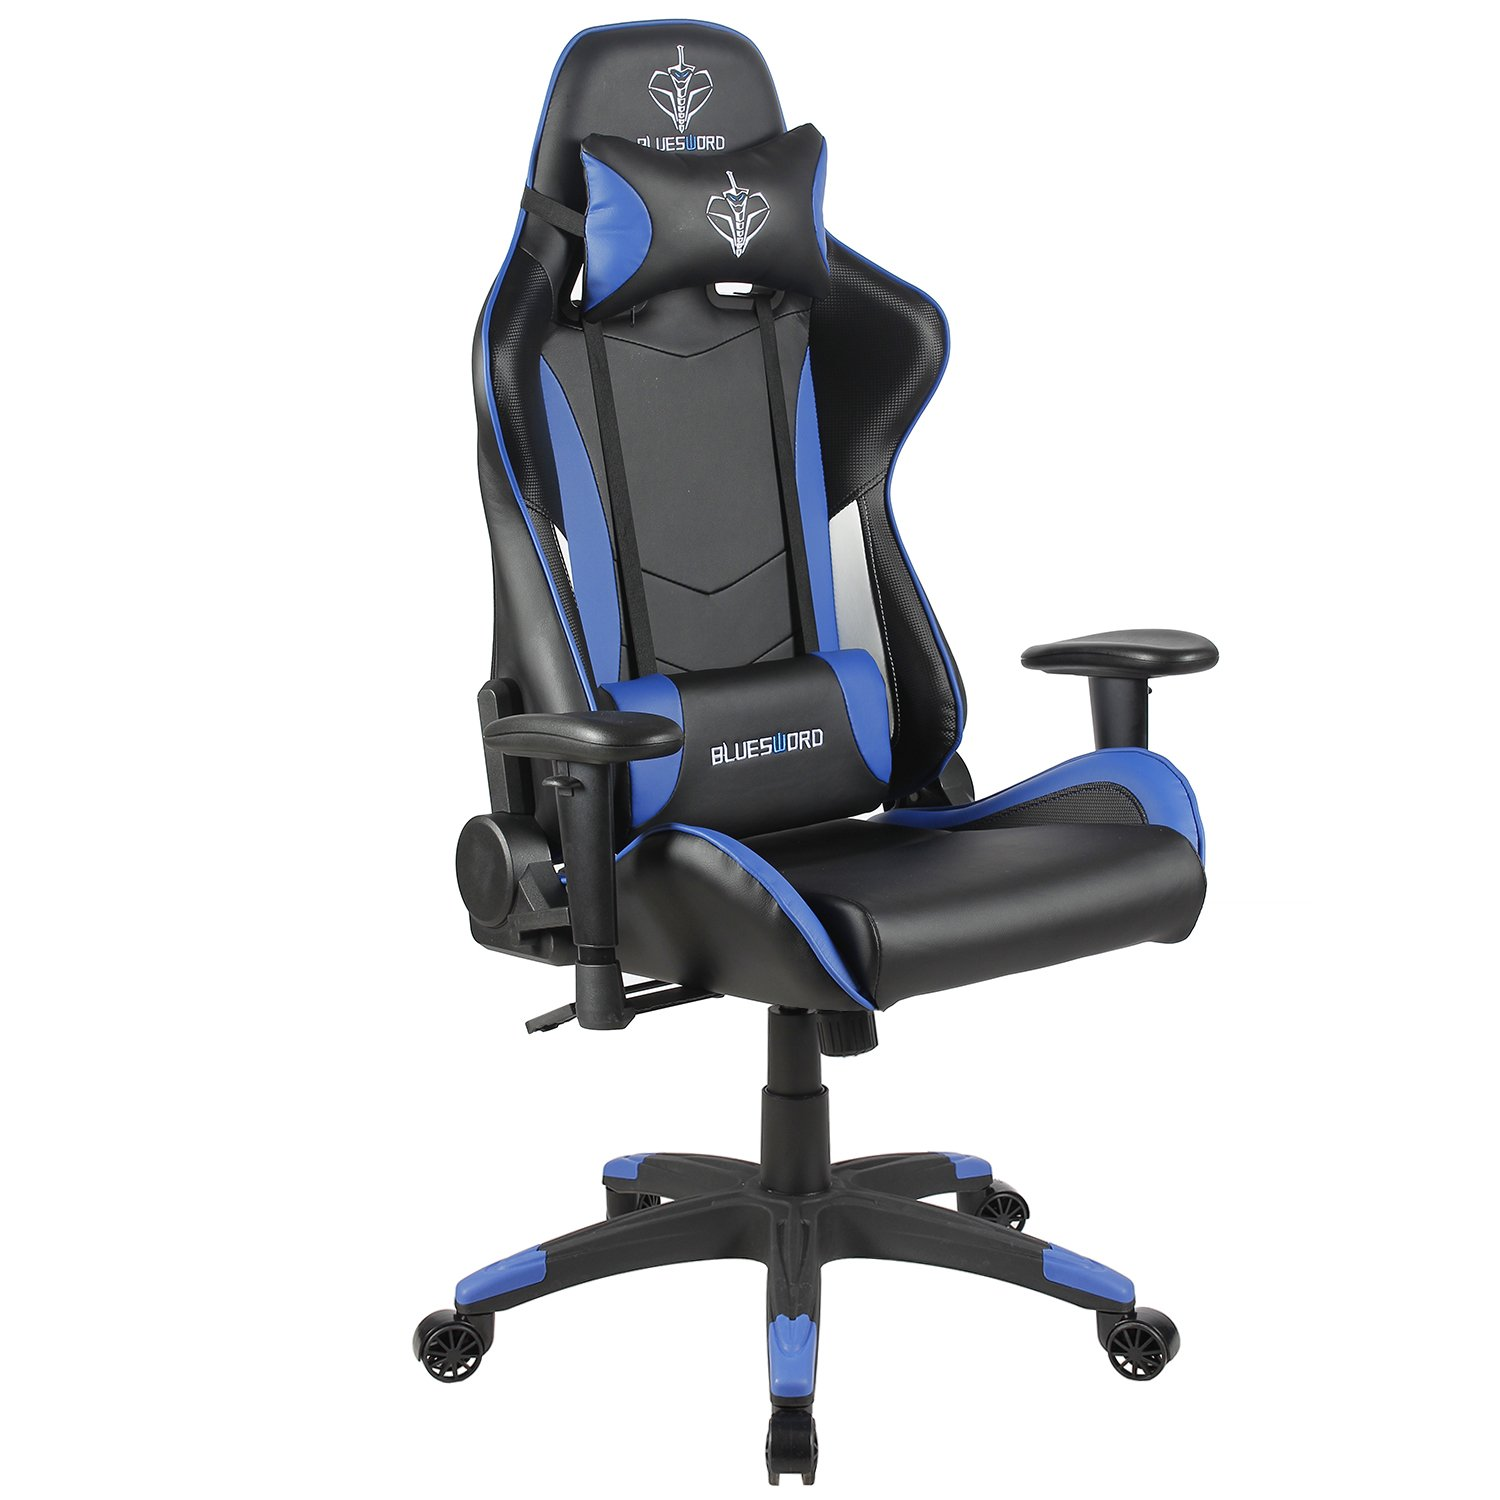 BLUE SWORD Carbon Fiber Gaming Chair Large Size Racing Style High-back Adjustment Office Chair With Lumbar Support and Headrest White&Blue, BS004